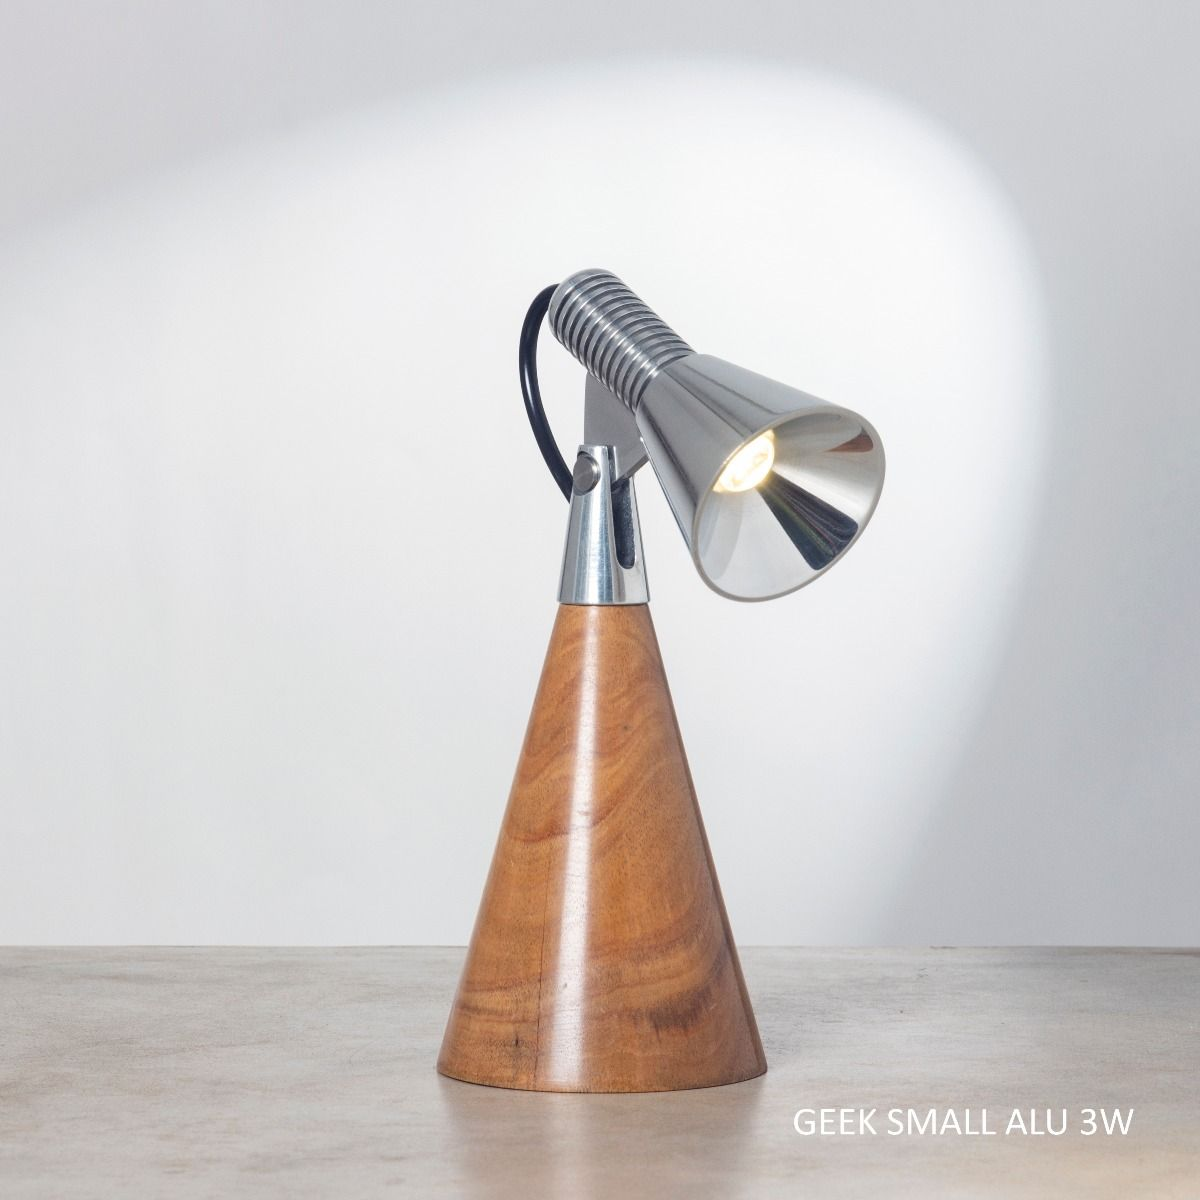 Geek S ALU 3W Table Lamp